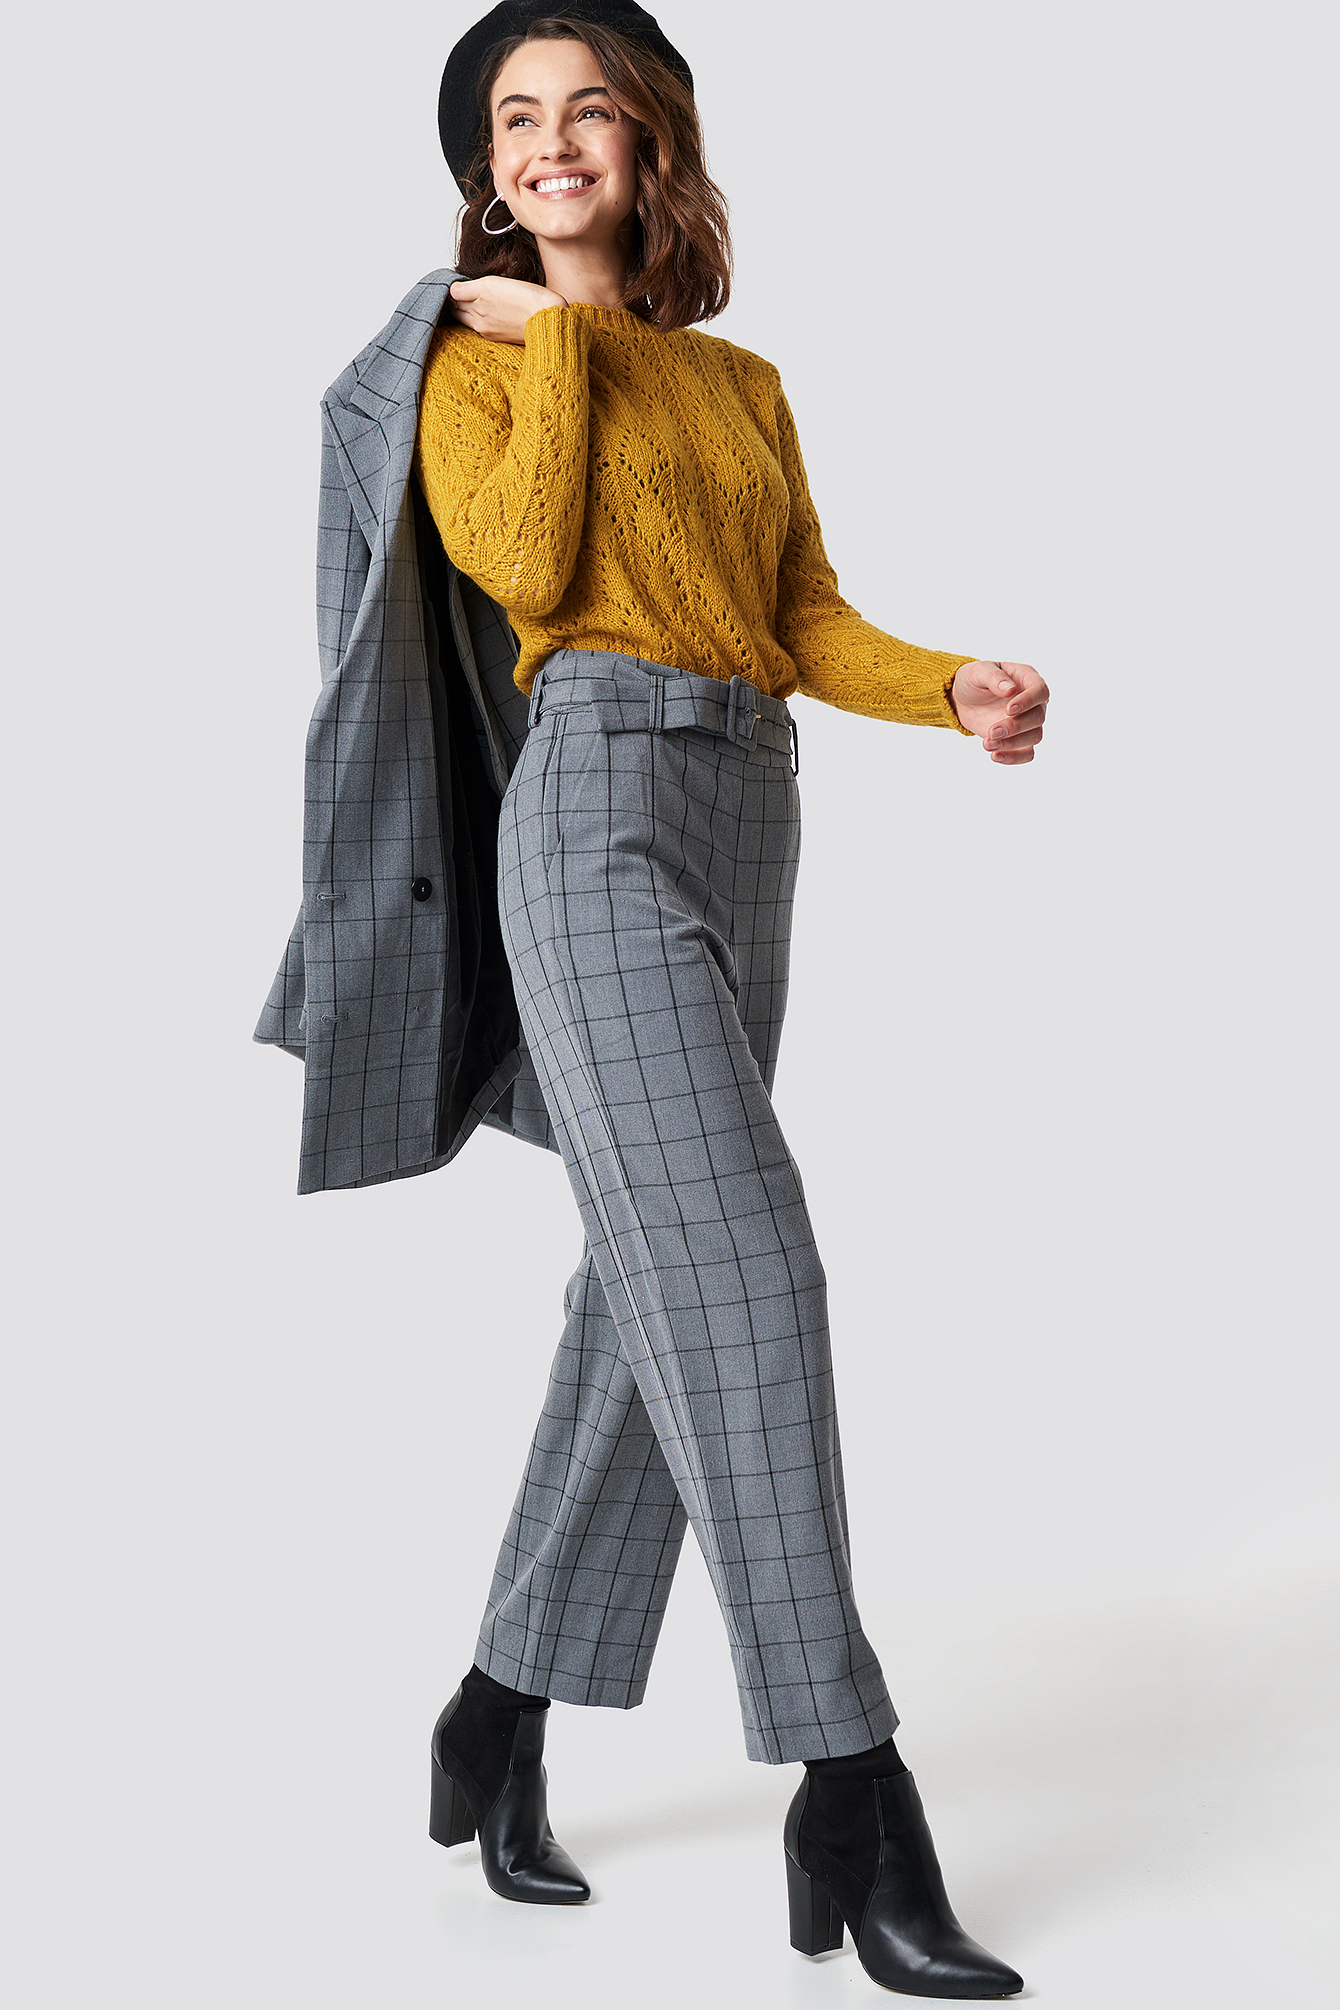 The Mokita Pants by Gestuz features a high waist, straight fit, side slanting pockets, mock back pockets, belt loops, waist belt with a buckle and eyelets, and a side zip and button closure.